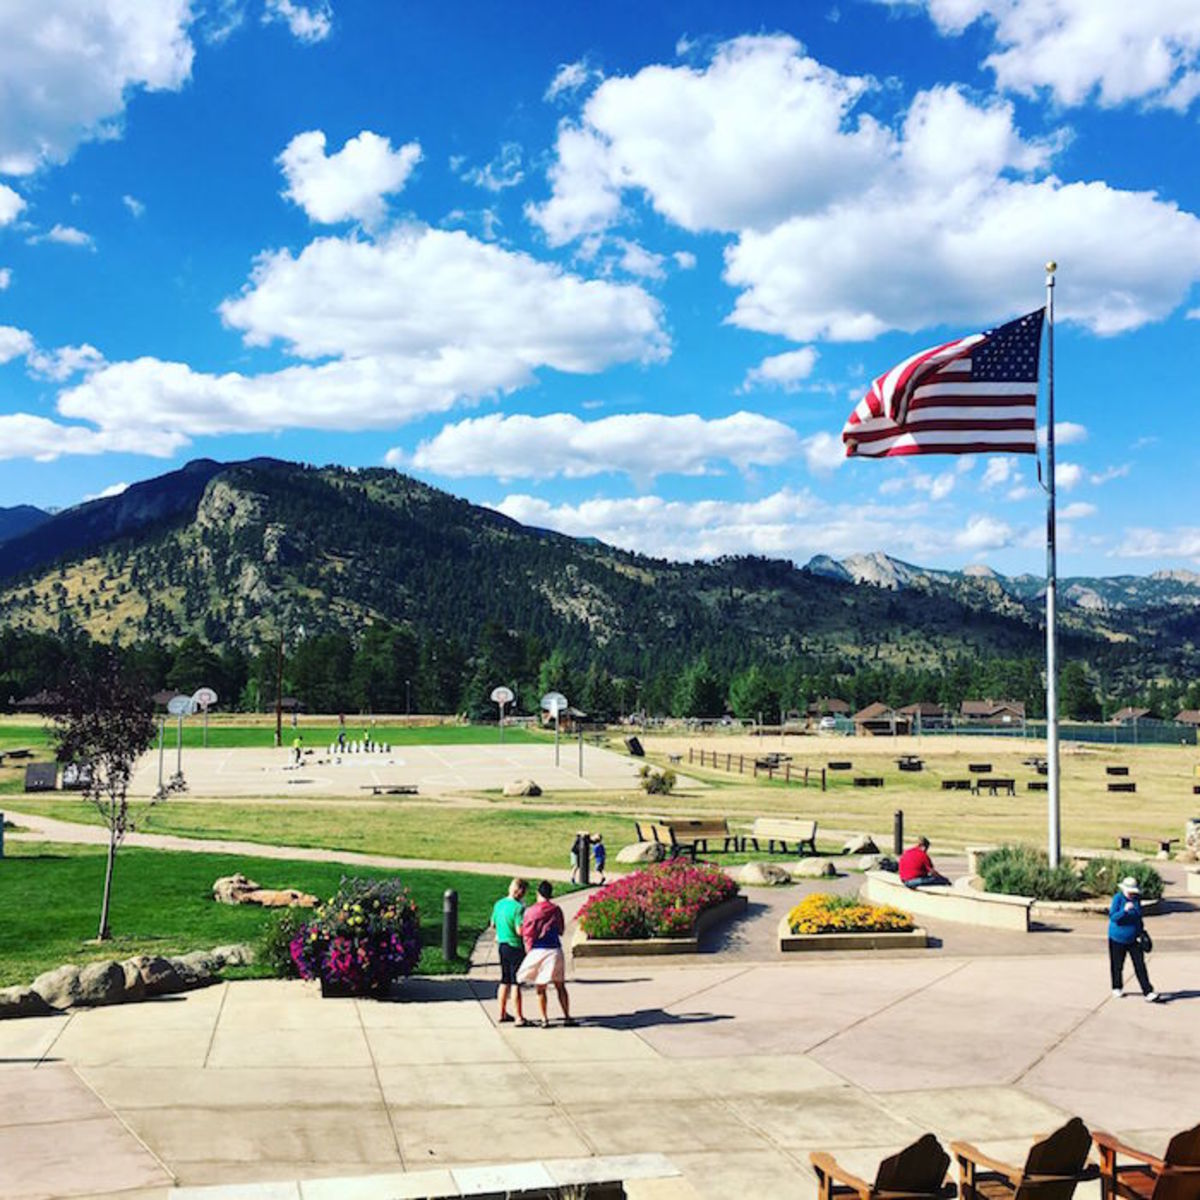 ymca-of-the-rockies-estes-park-colorado-vacation